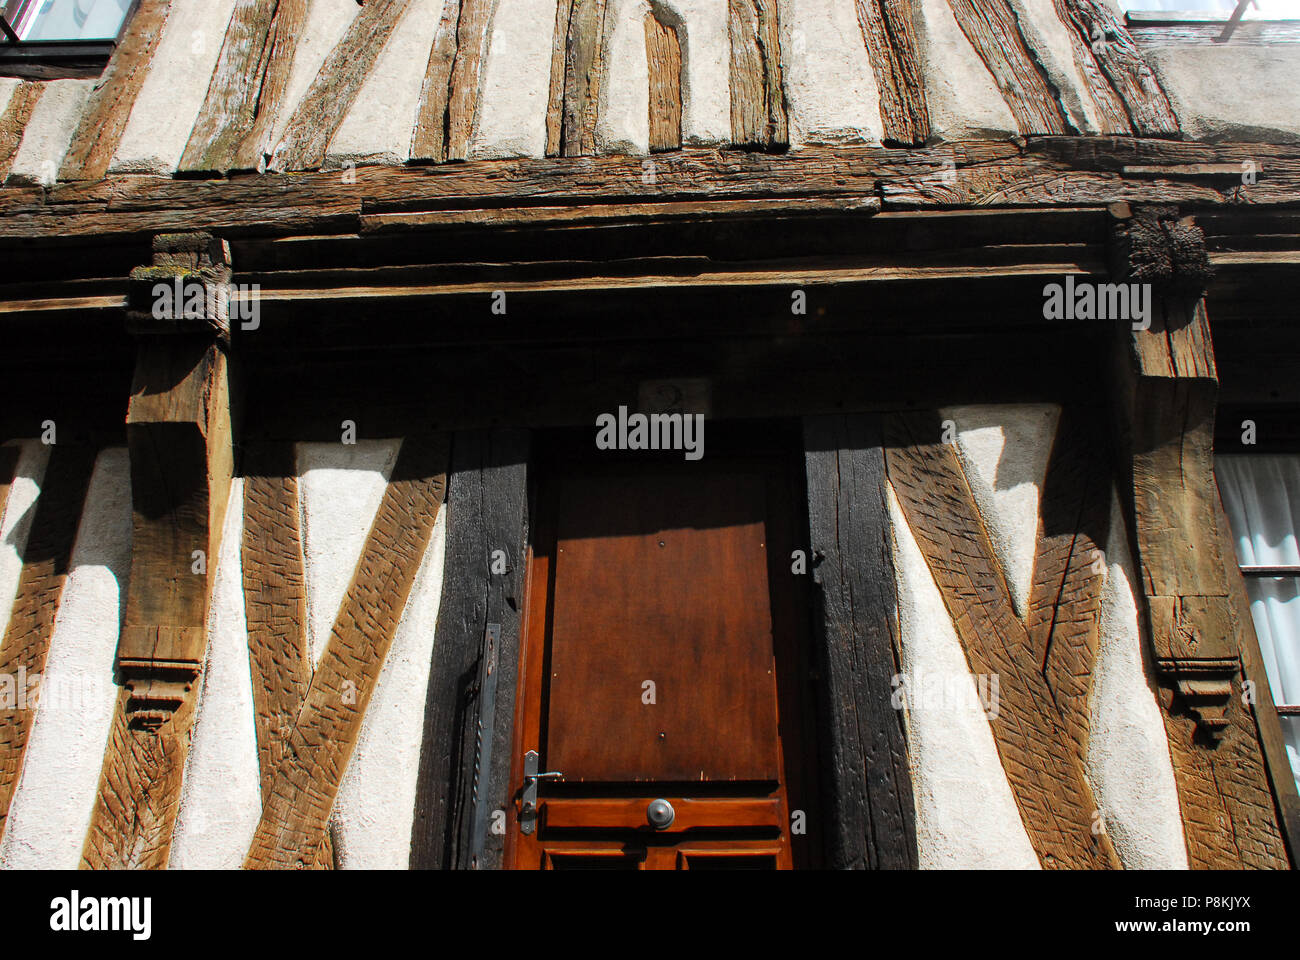 Architectural details captured in a close up of this amazing half-timber house in charming Noyers-Sur-Serein, France. - Stock Image